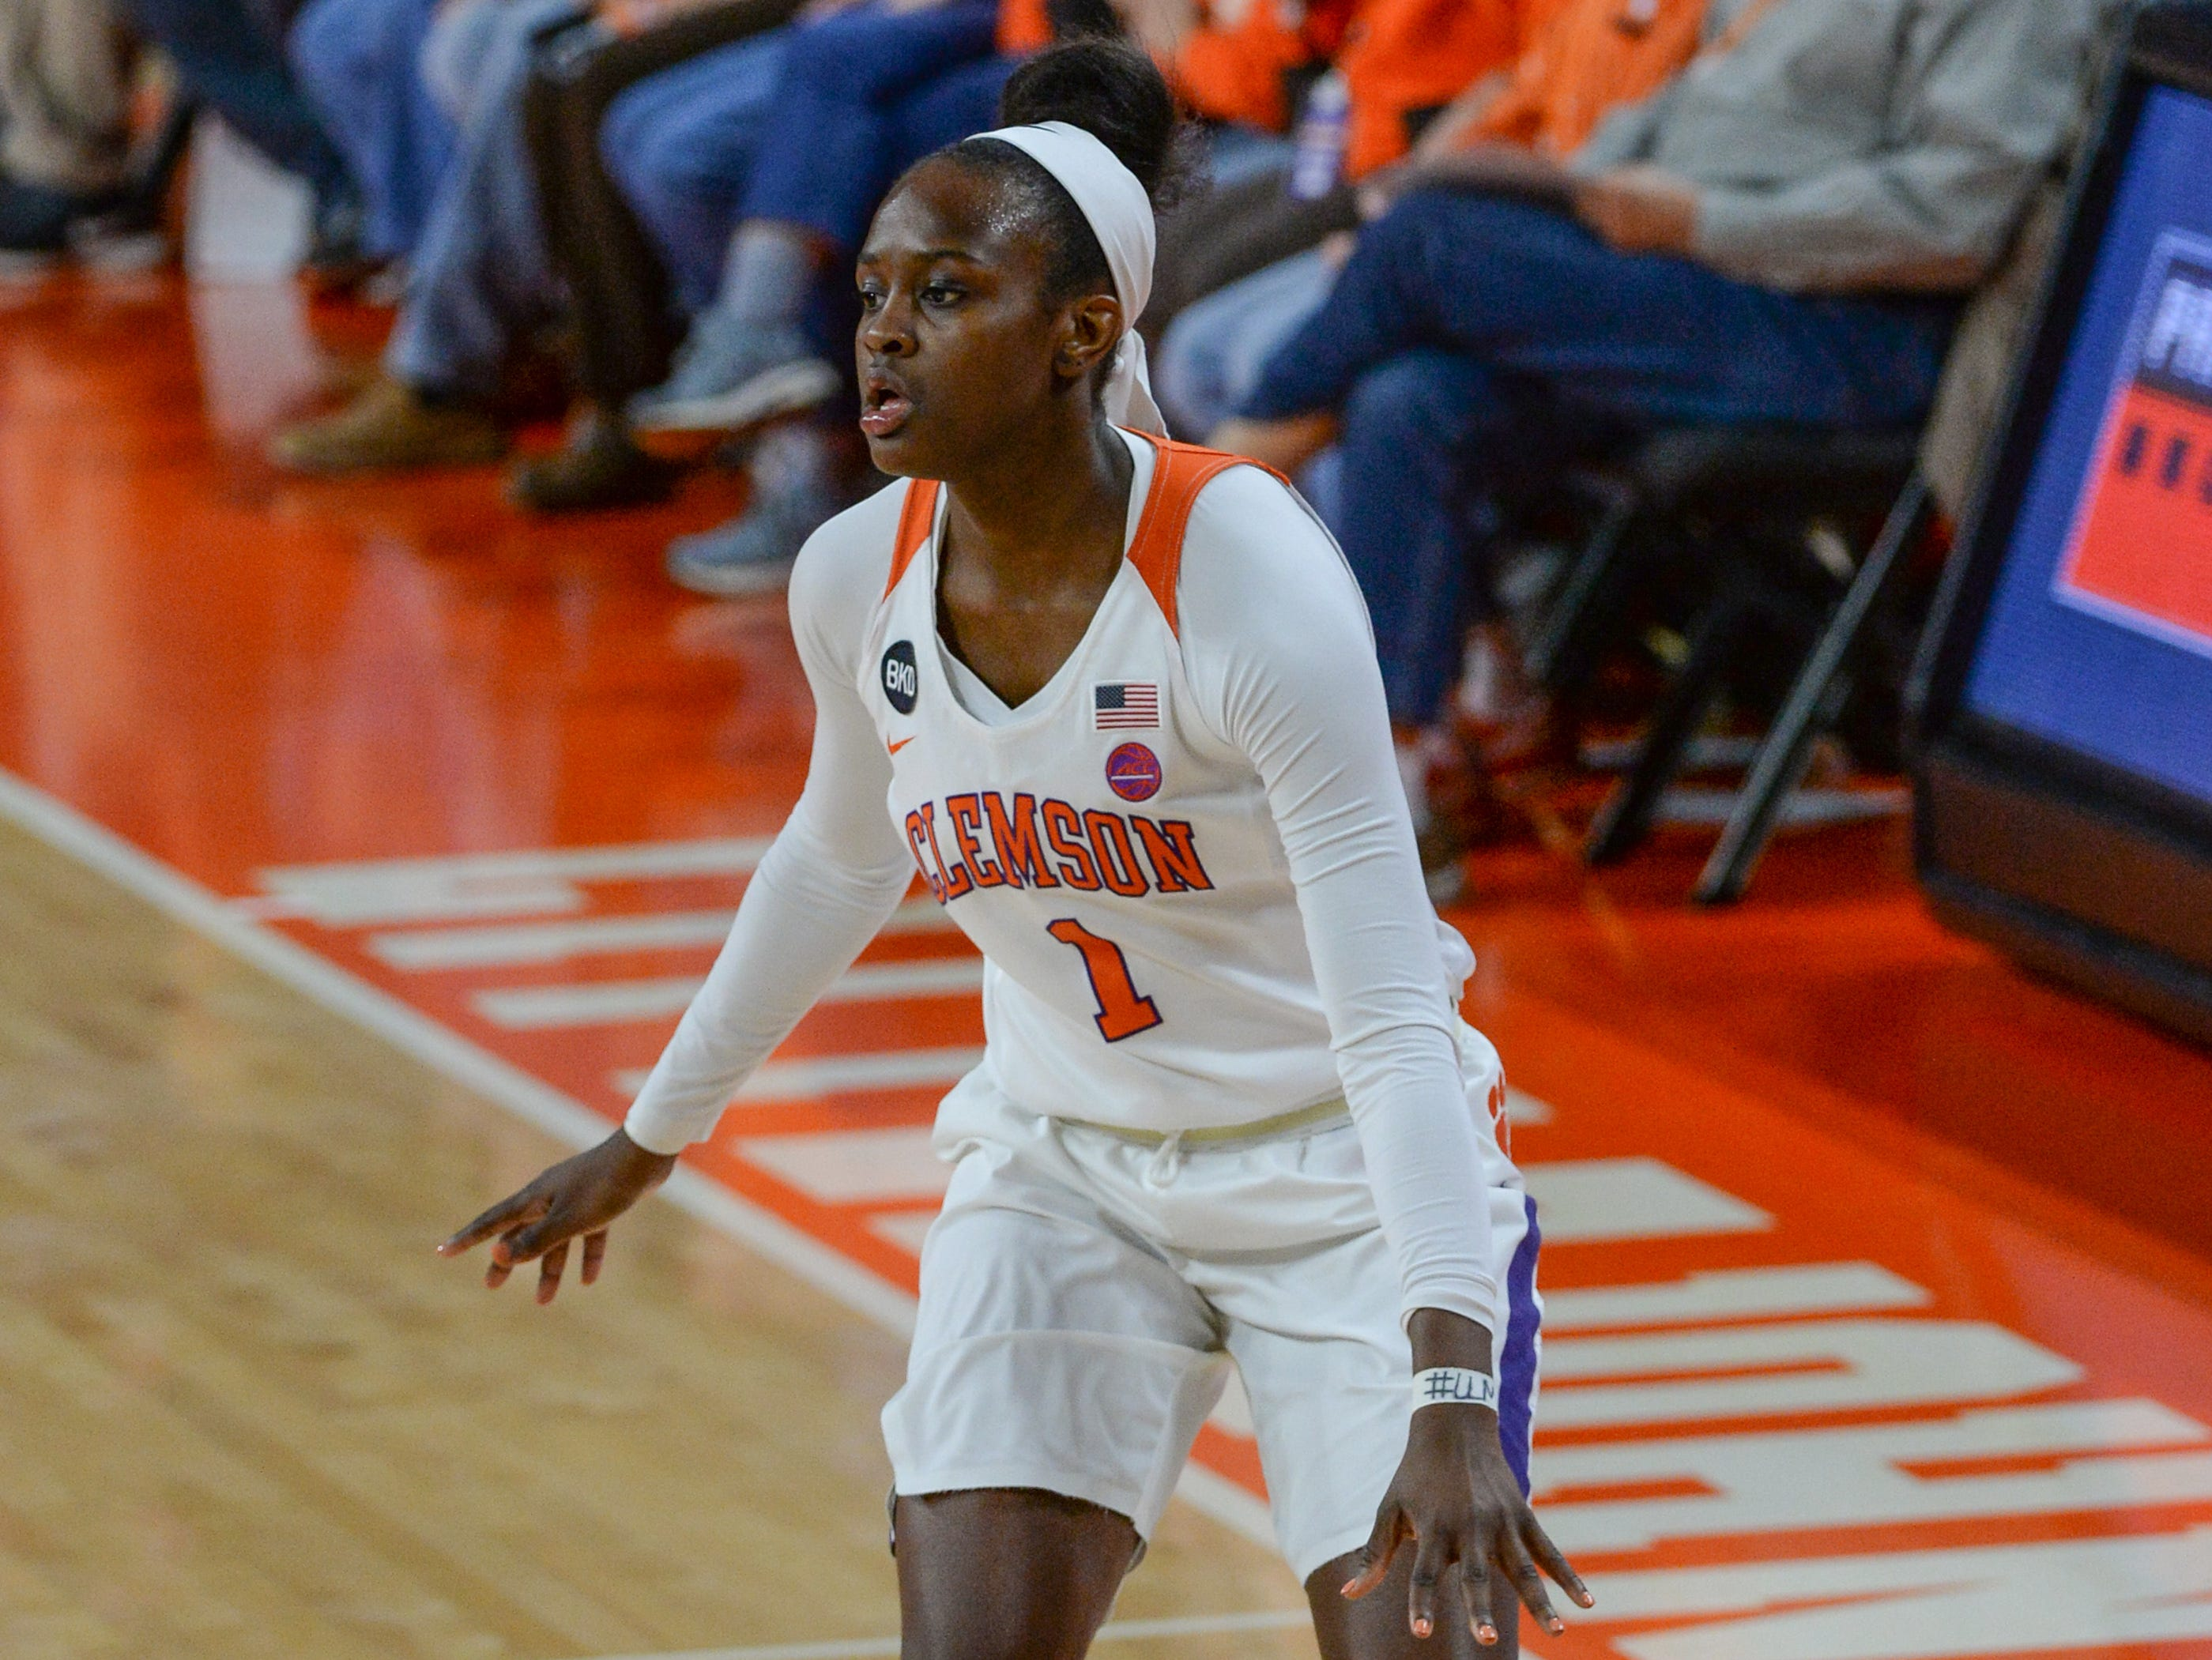 Clemson guard Destiny Thomas(1) during the second quarter of the game with Georgia Tech at Littlejohn Coliseum in Clemson Thursday, January 17, 2019.